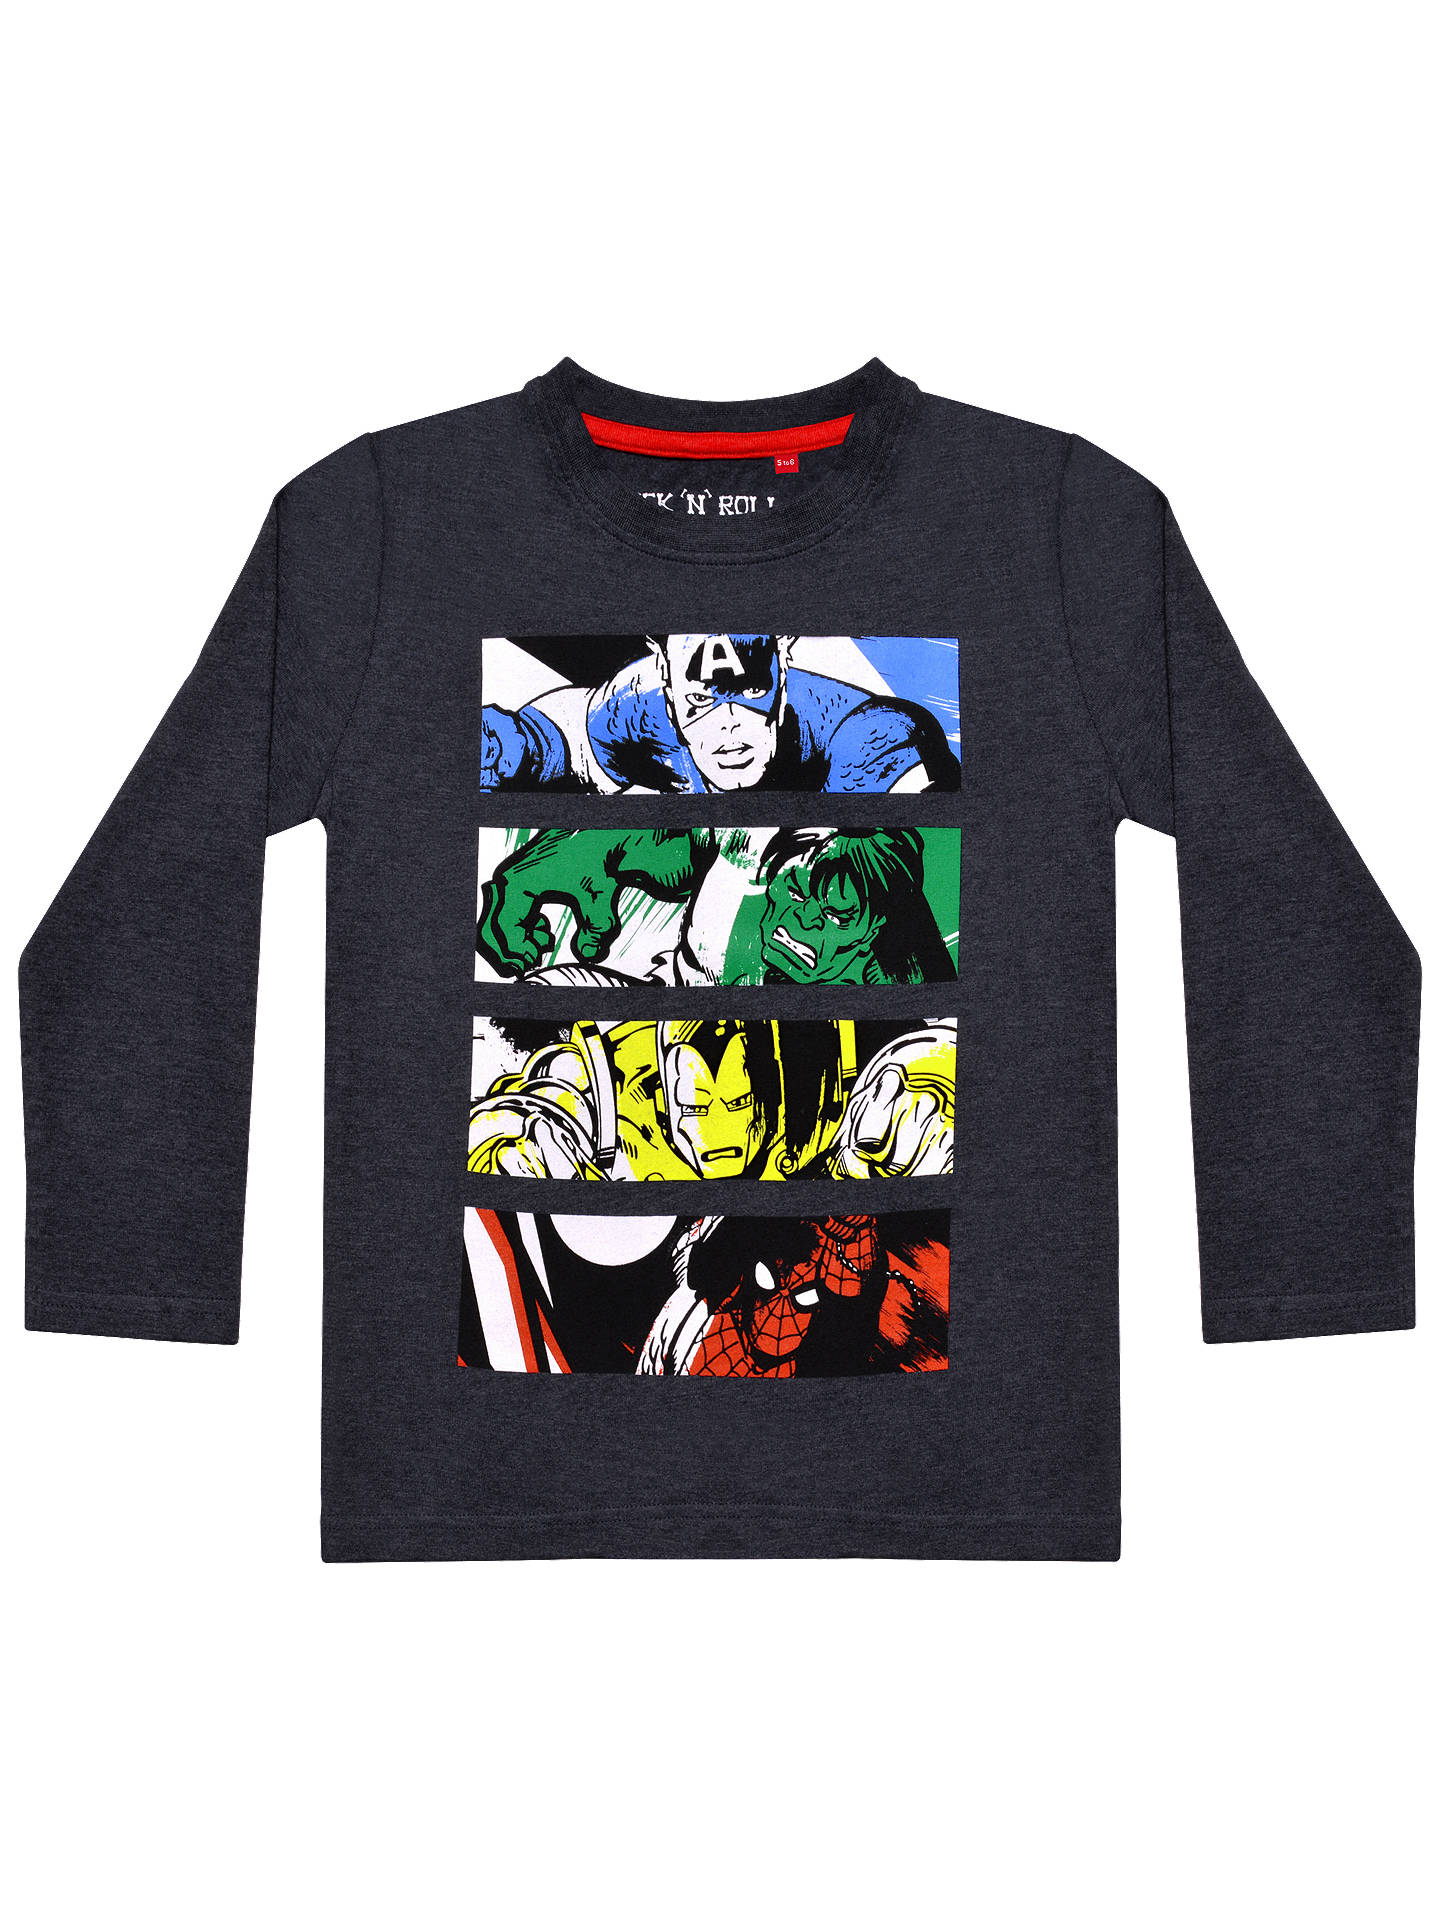 Spider-Man Marvel Boys Navy//Gray Graphic Tee Long Sleeve T-Shirt